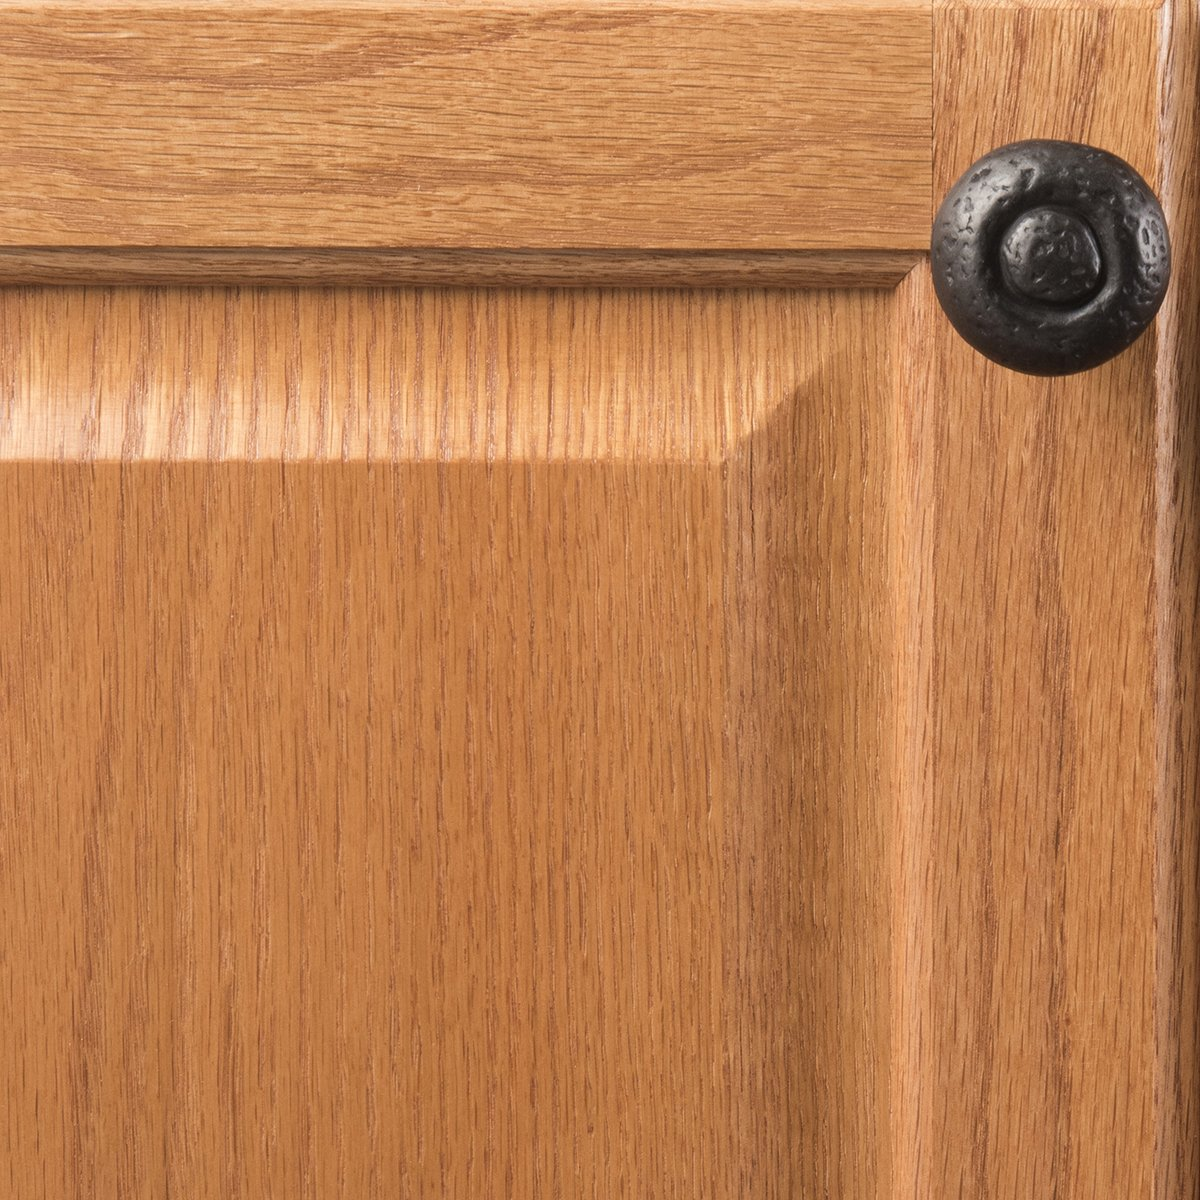 Hickory Hardware P3003-BI-25B Refined Rustic Collection Knob, 1-1/2 Inch Diameter, Black Iron, 25 Each by Hickory Hardware (Image #5)